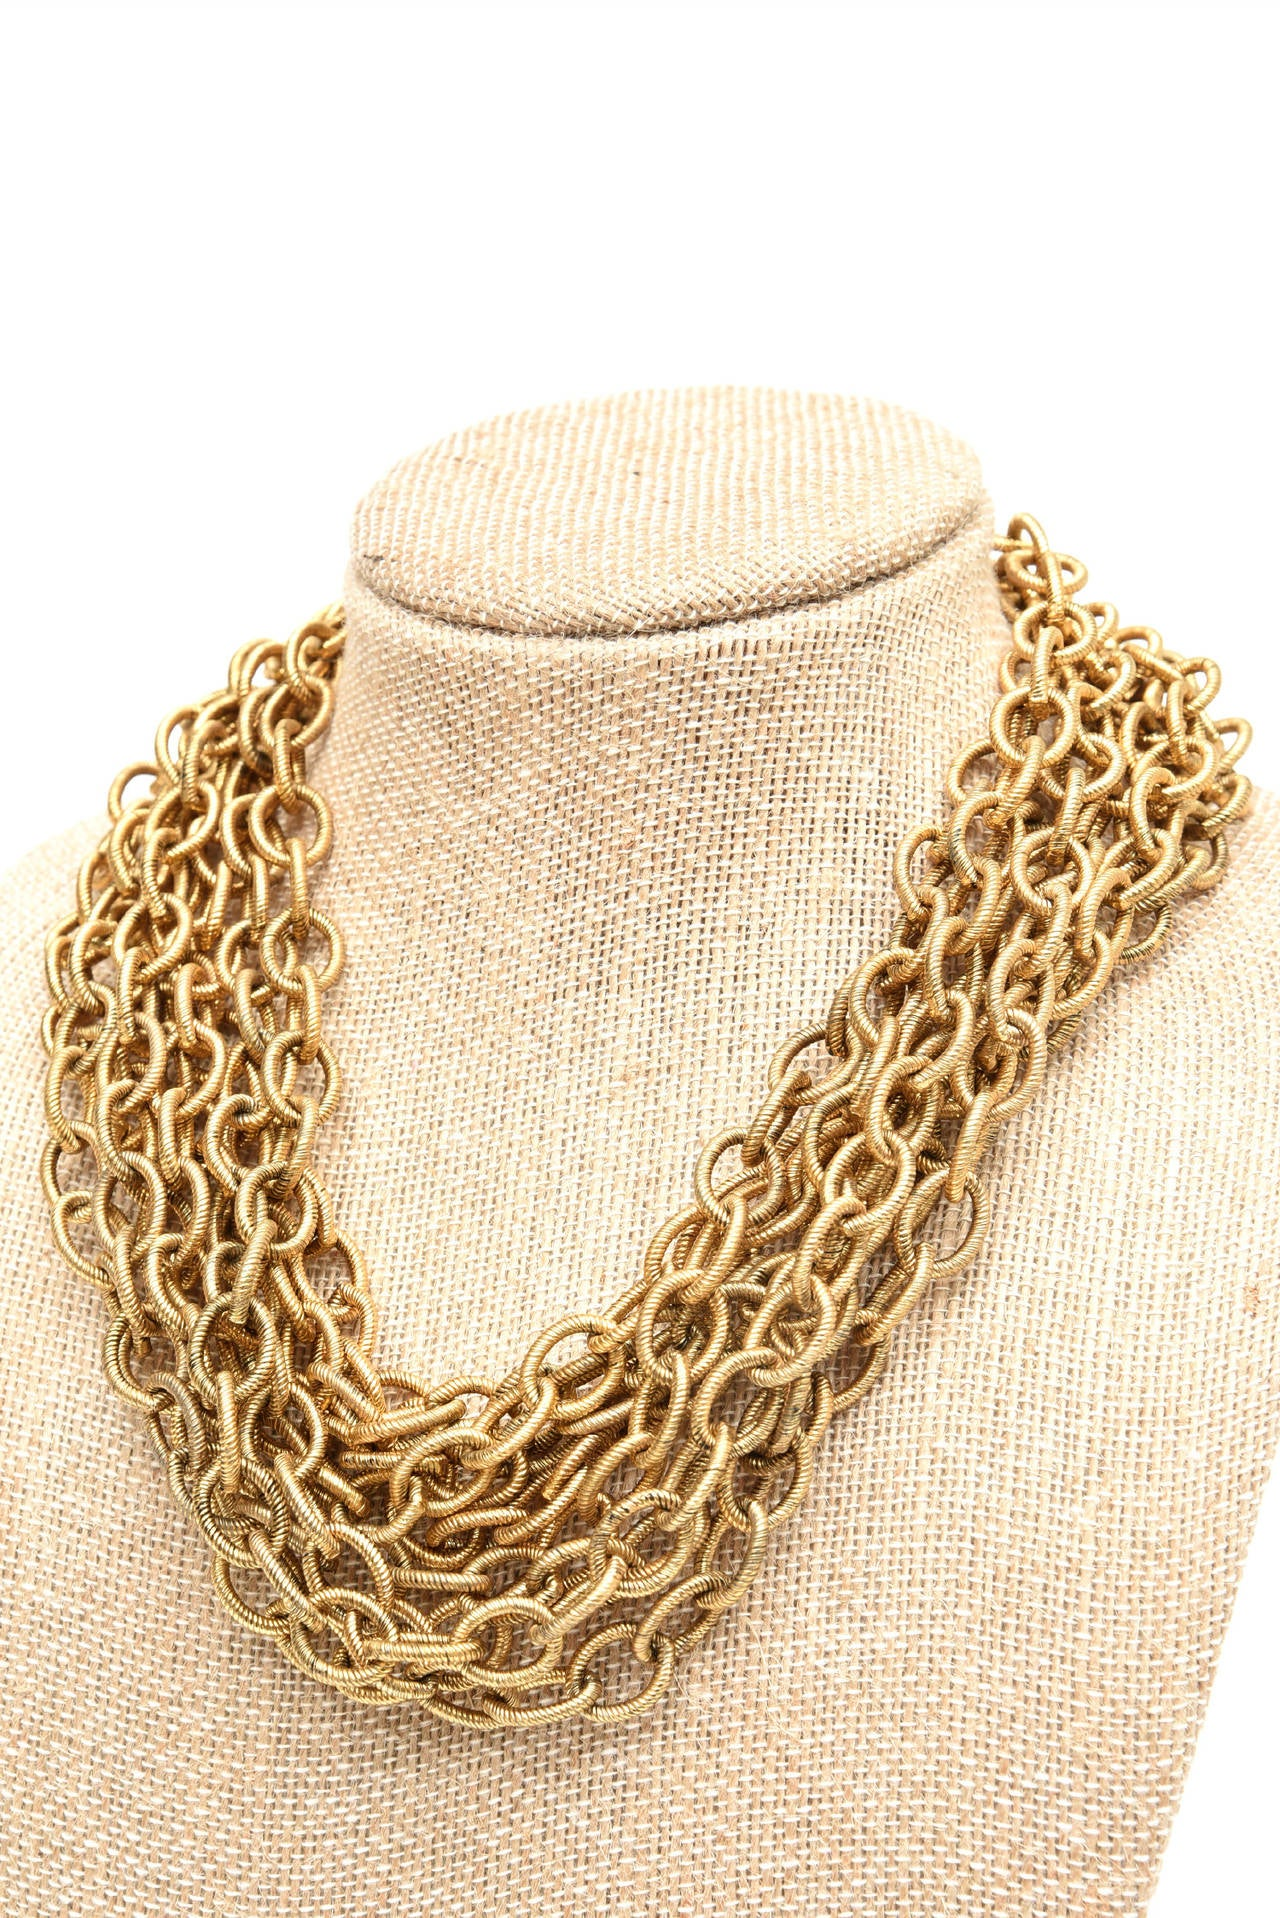 8 Row Chain Necklace Italian Vintage In Good Condition For Sale In North Miami, FL